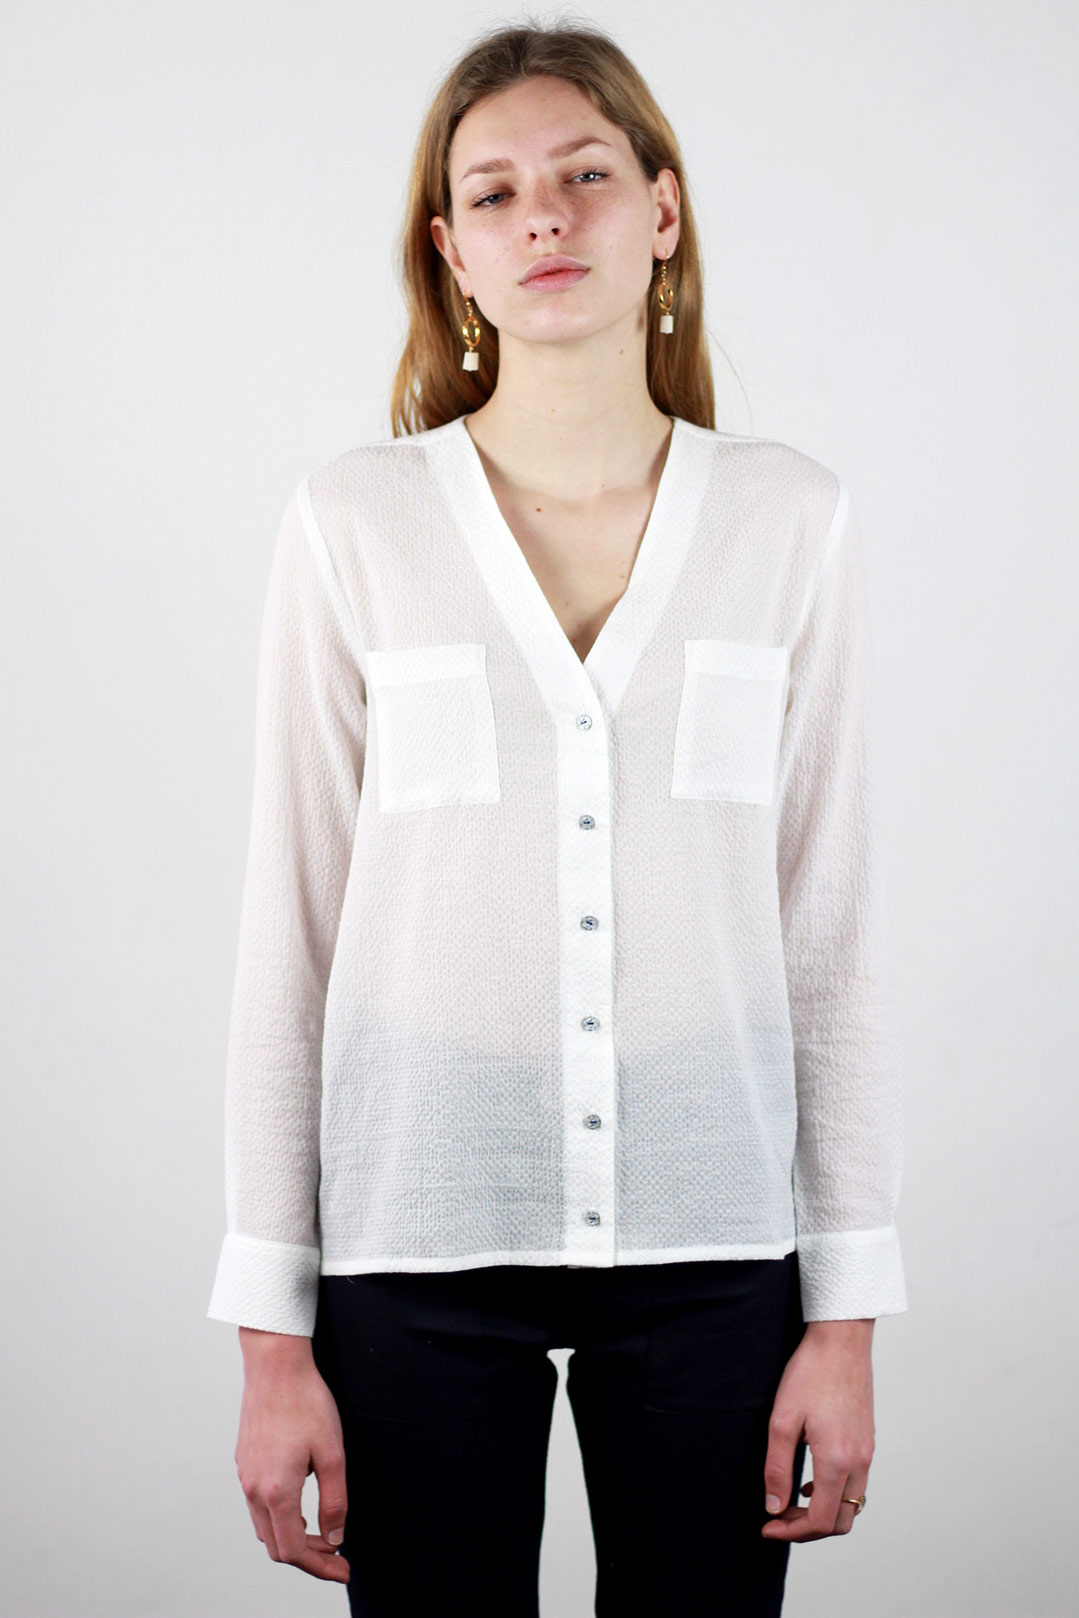 4cfb9e72ebe76 Chemisier Blanc femme Chic en coton Made in France   ATODE